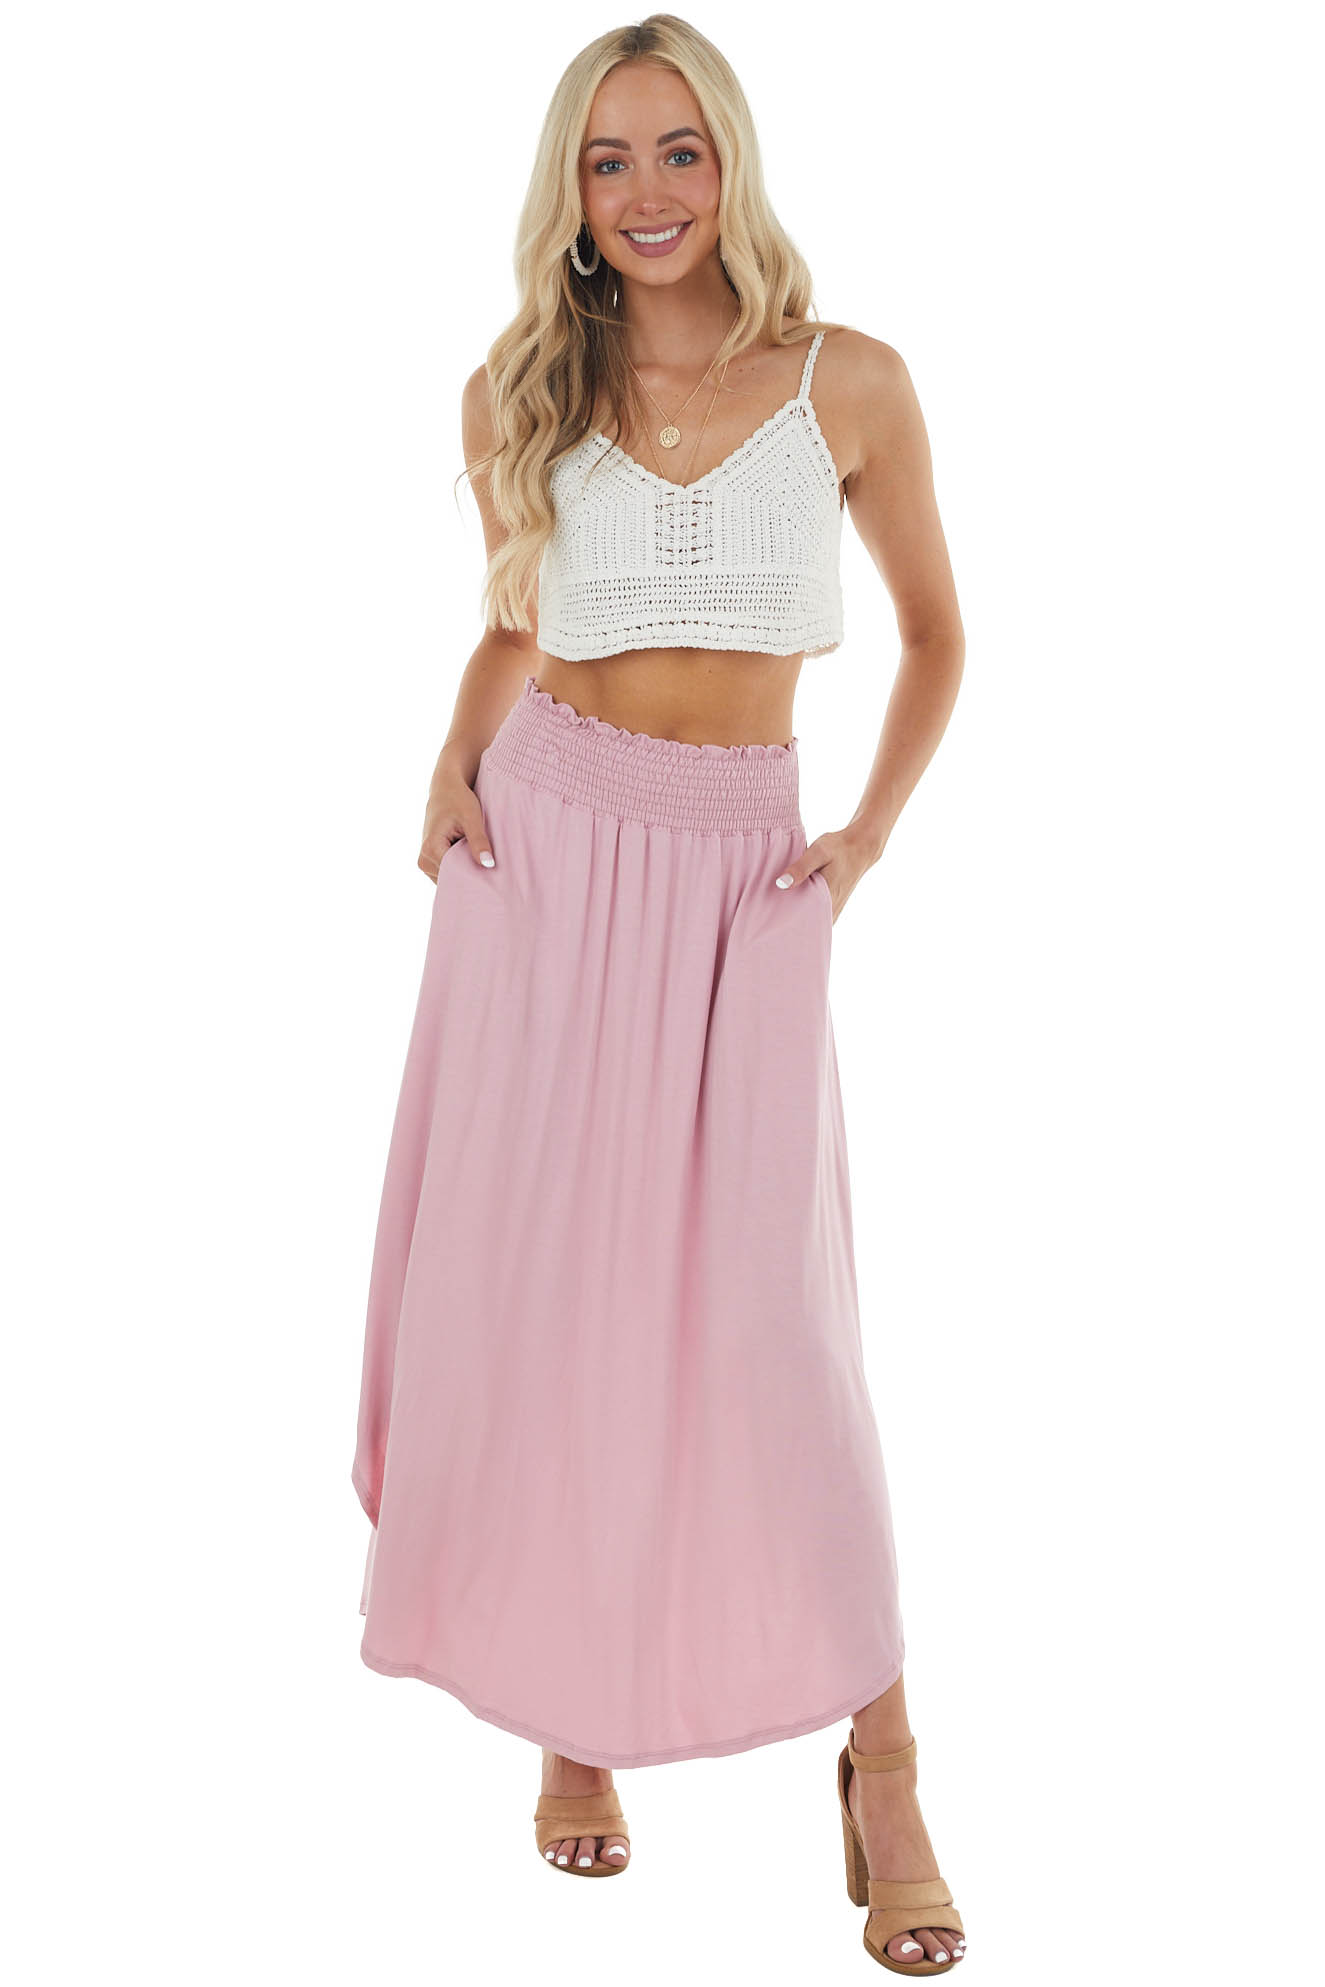 Baby Pink Maxi Skirt with Smocked Waist and Rounded Hemline